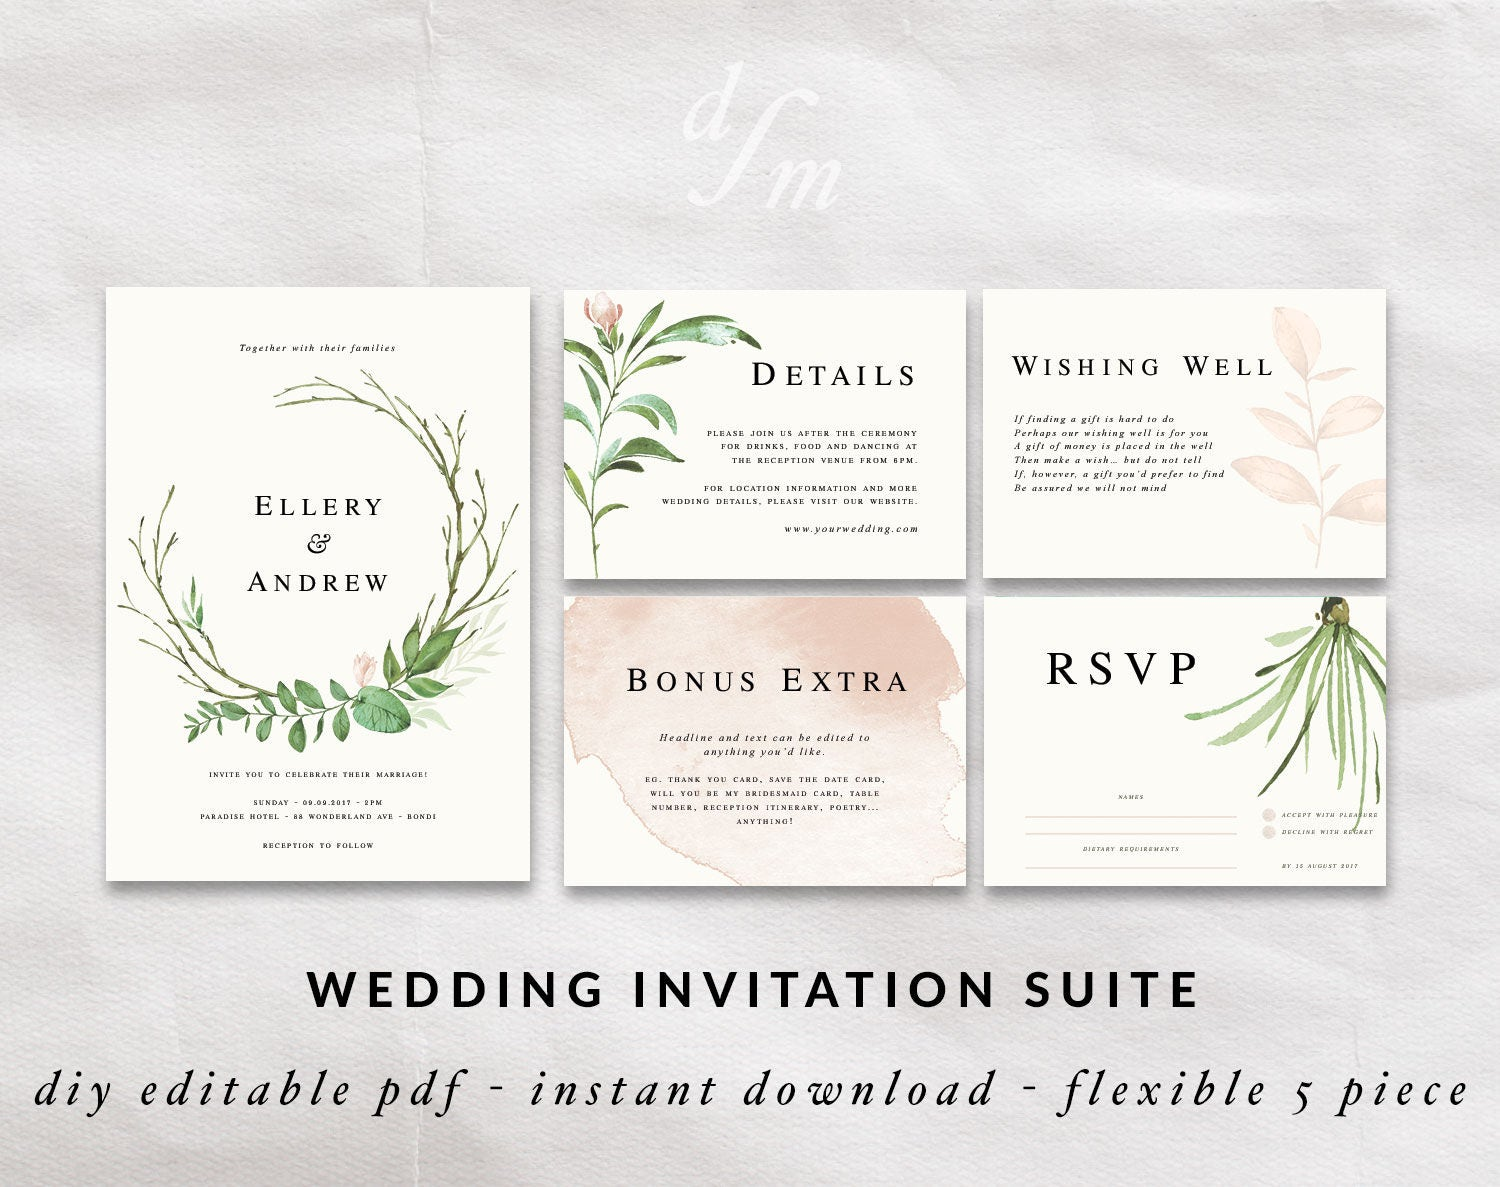 Diy Calligraphy For Wedding Invitations: Floral Wreath Invitation DIY Wedding Invitation Templates